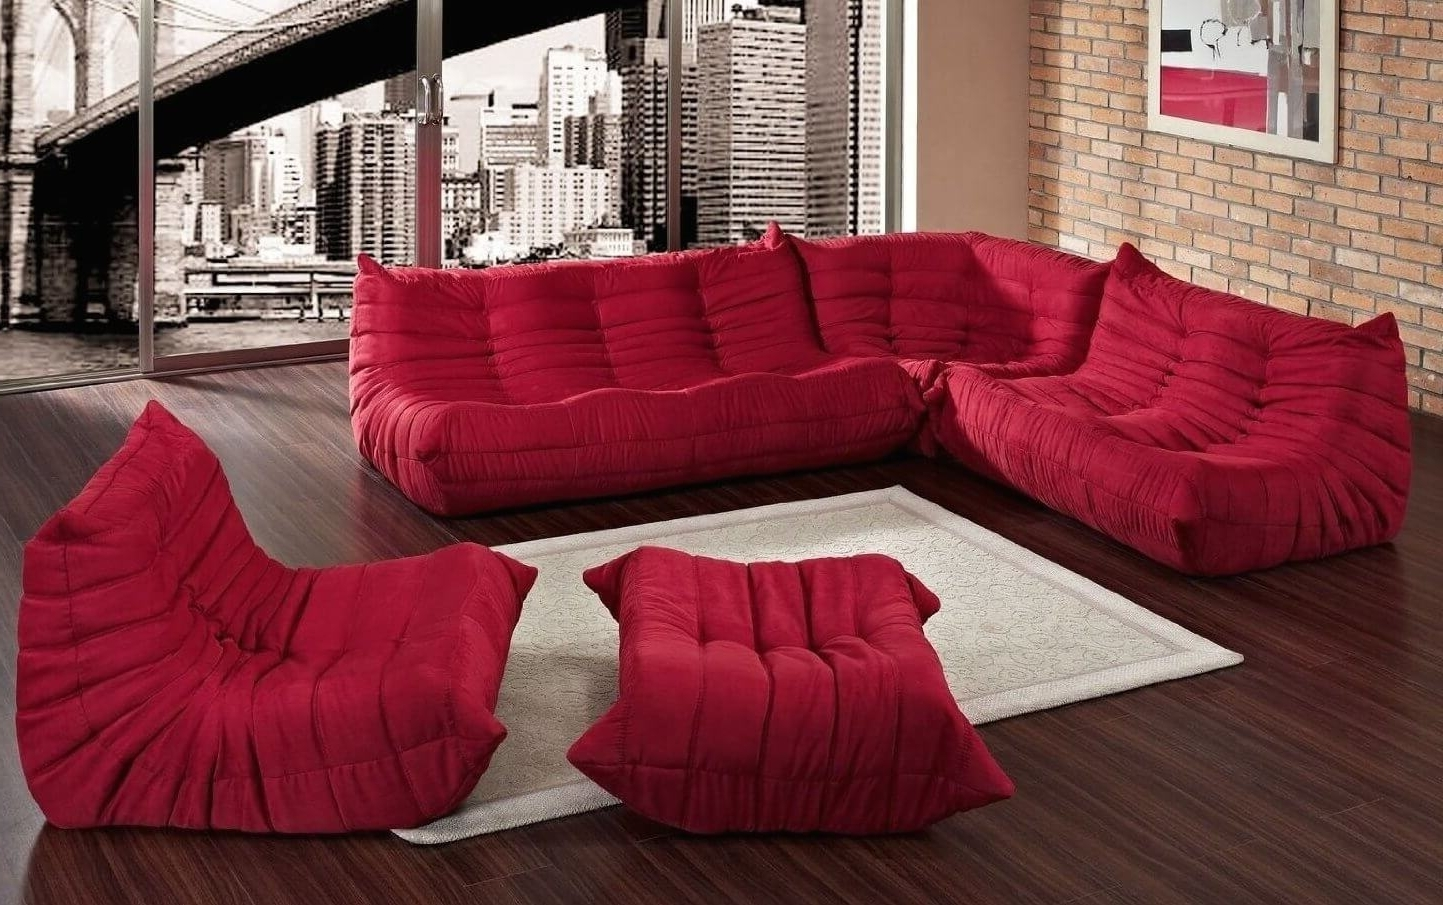 20 Types Of Modular Sectional Sofas Inside Well Liked Sectional Sofas That Can Be Rearranged (View 10 of 20)